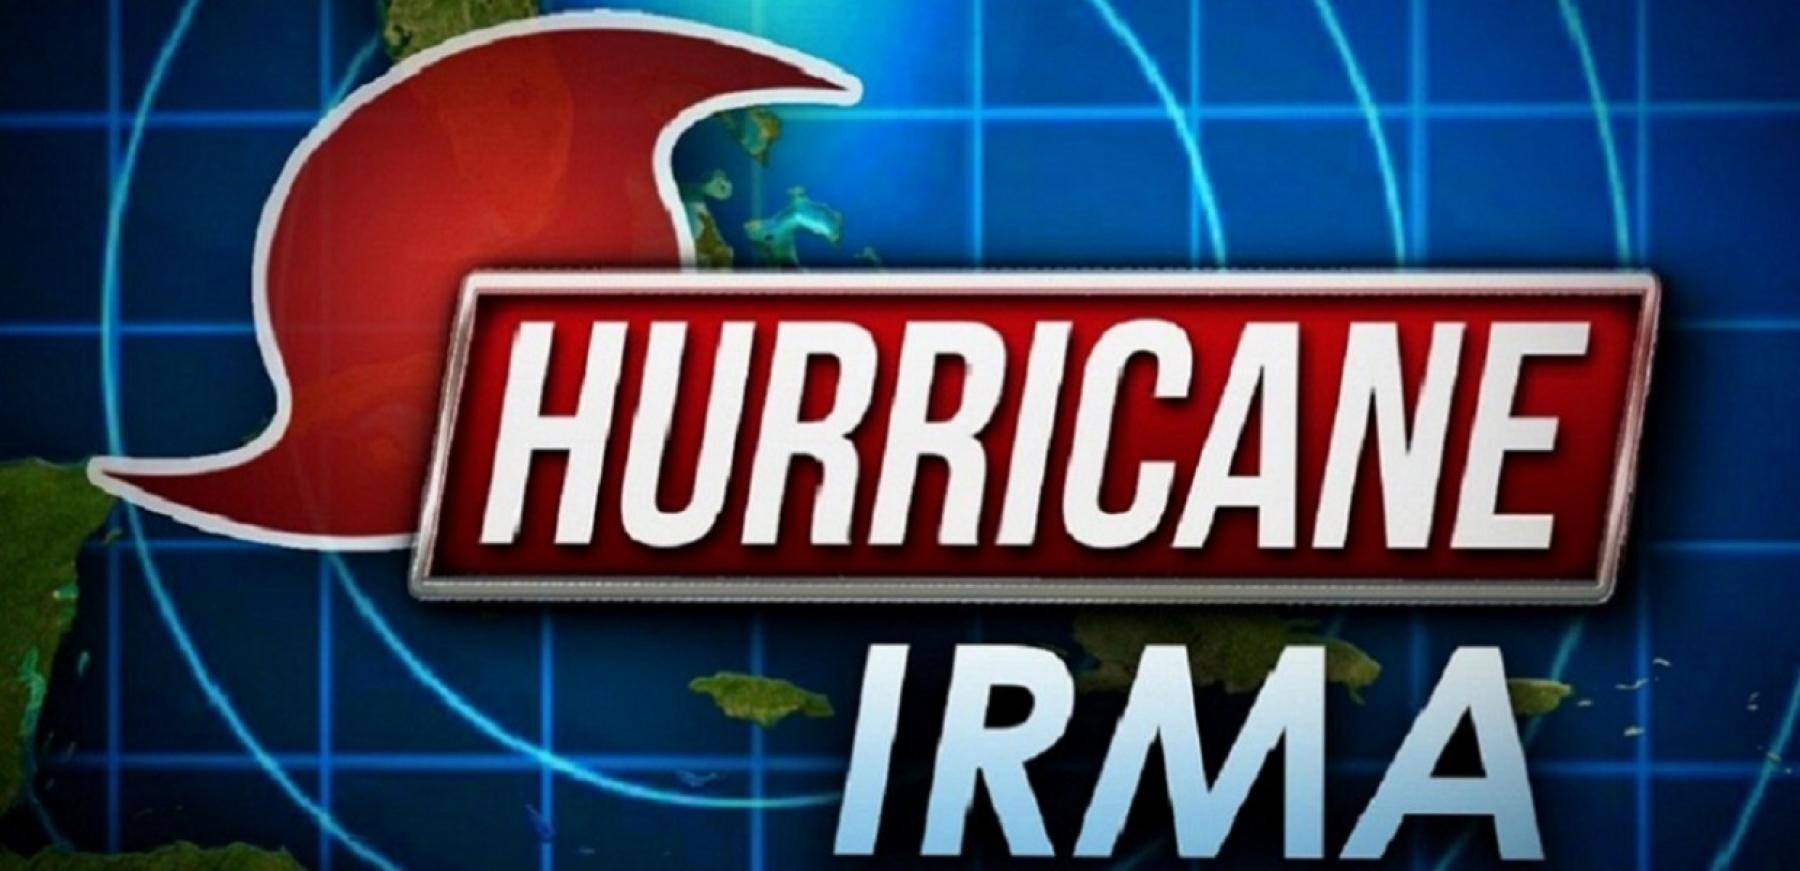 Athletic events postponed by Hurricane Irma